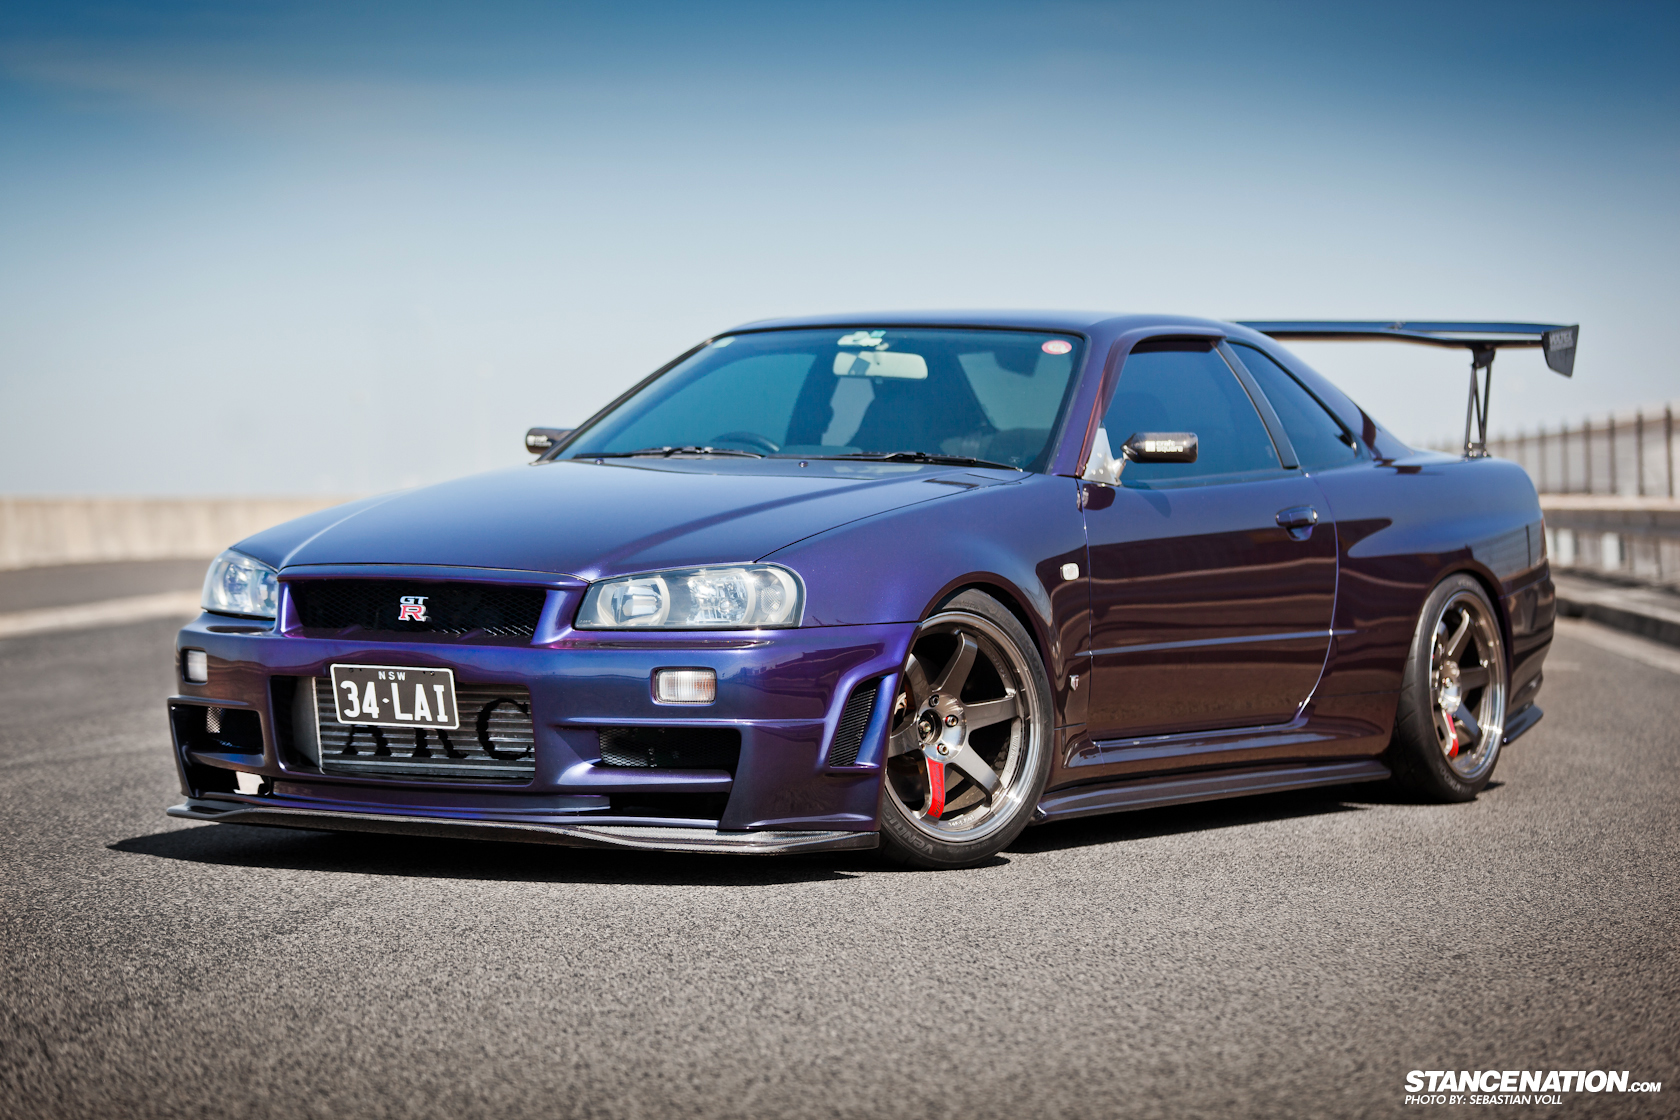 barely legal // david's nissan skyline r34 gtr. | stancenation